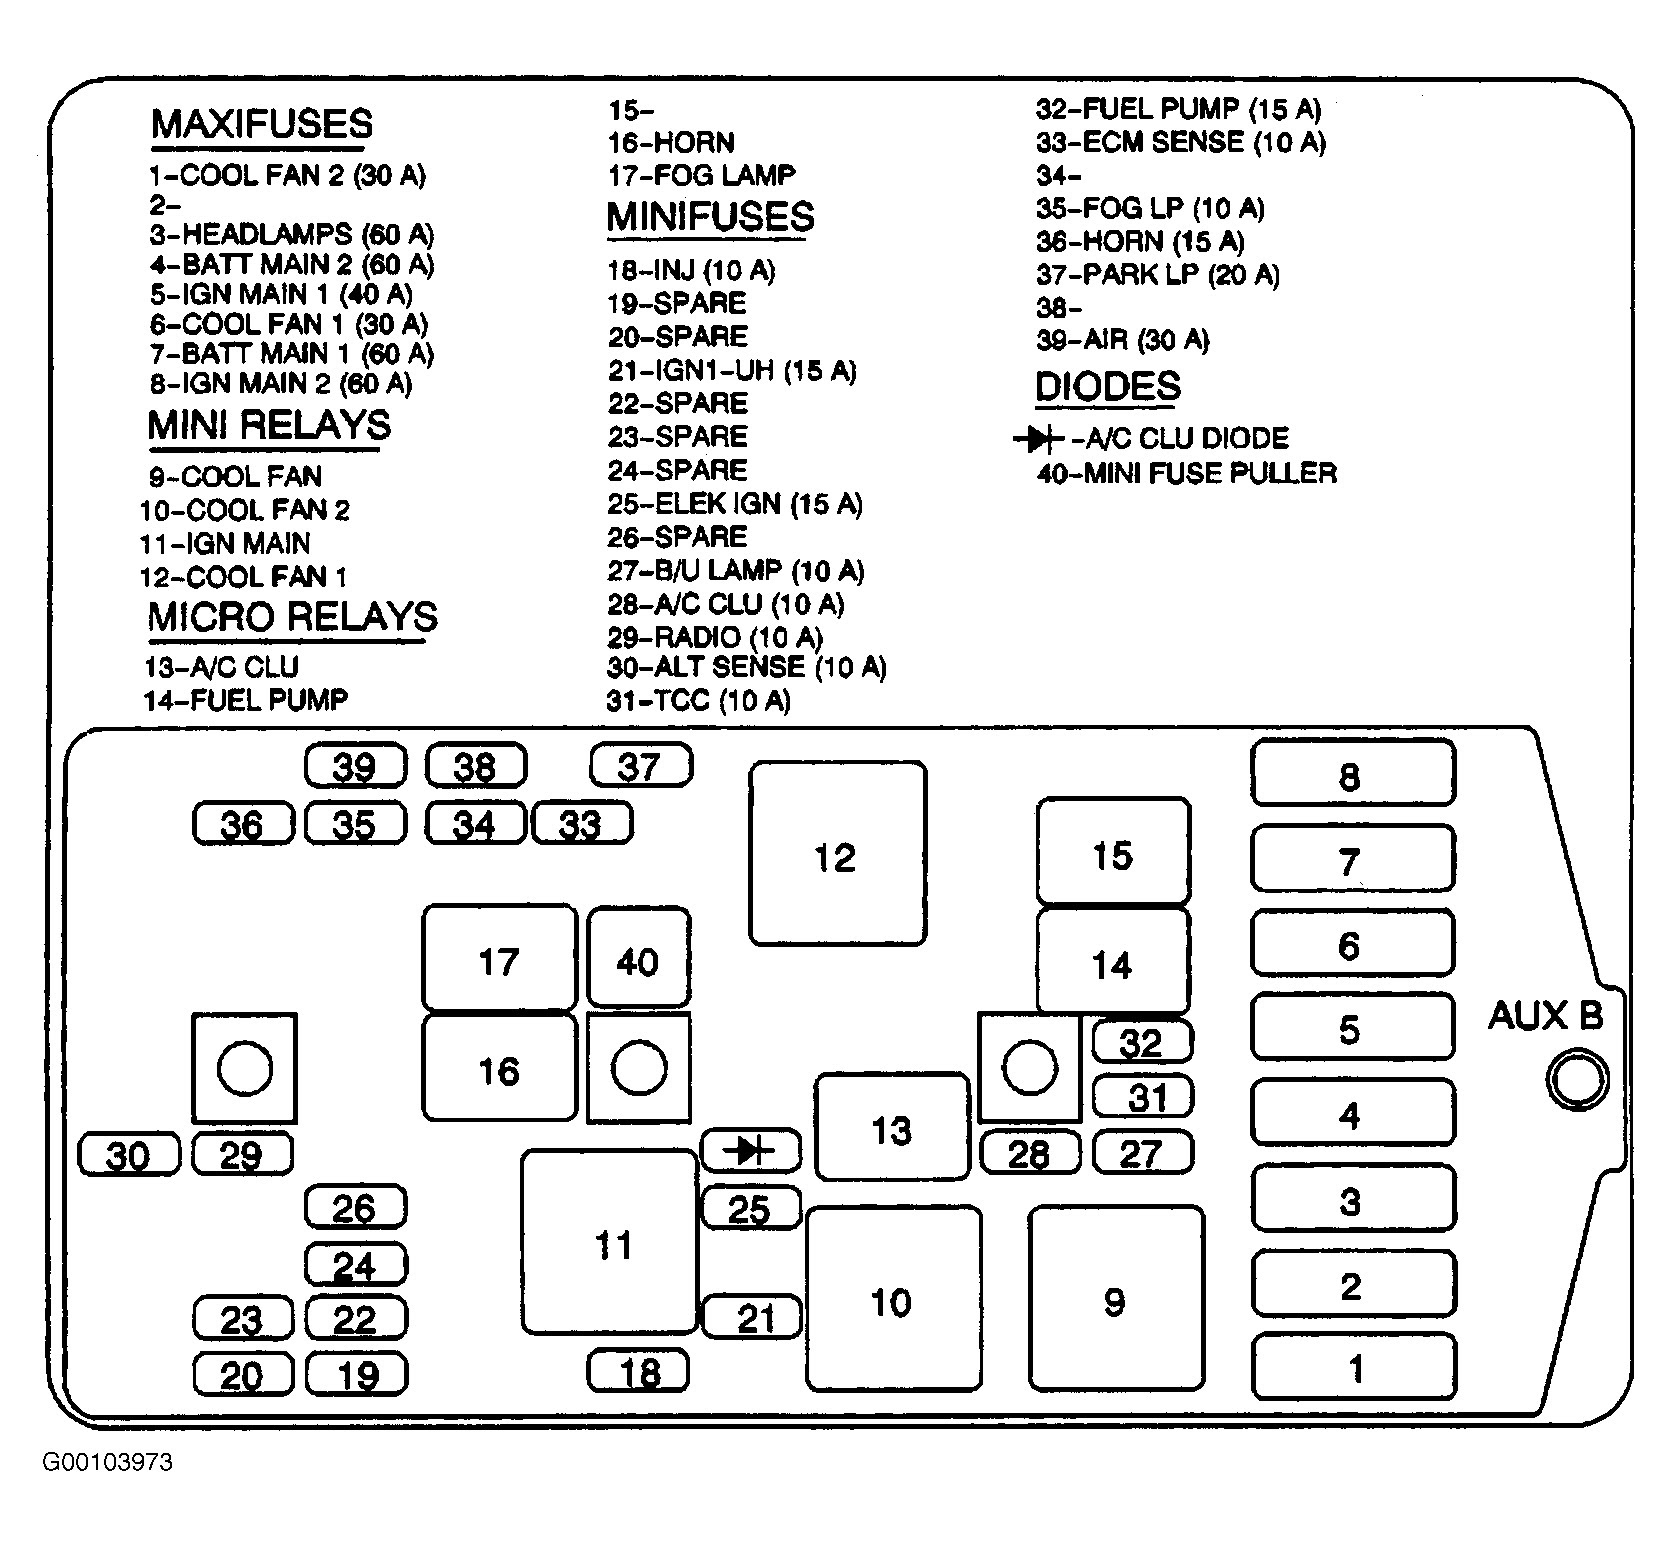 Wiring Diagram For 98 Malibu Free Download - Complete ...